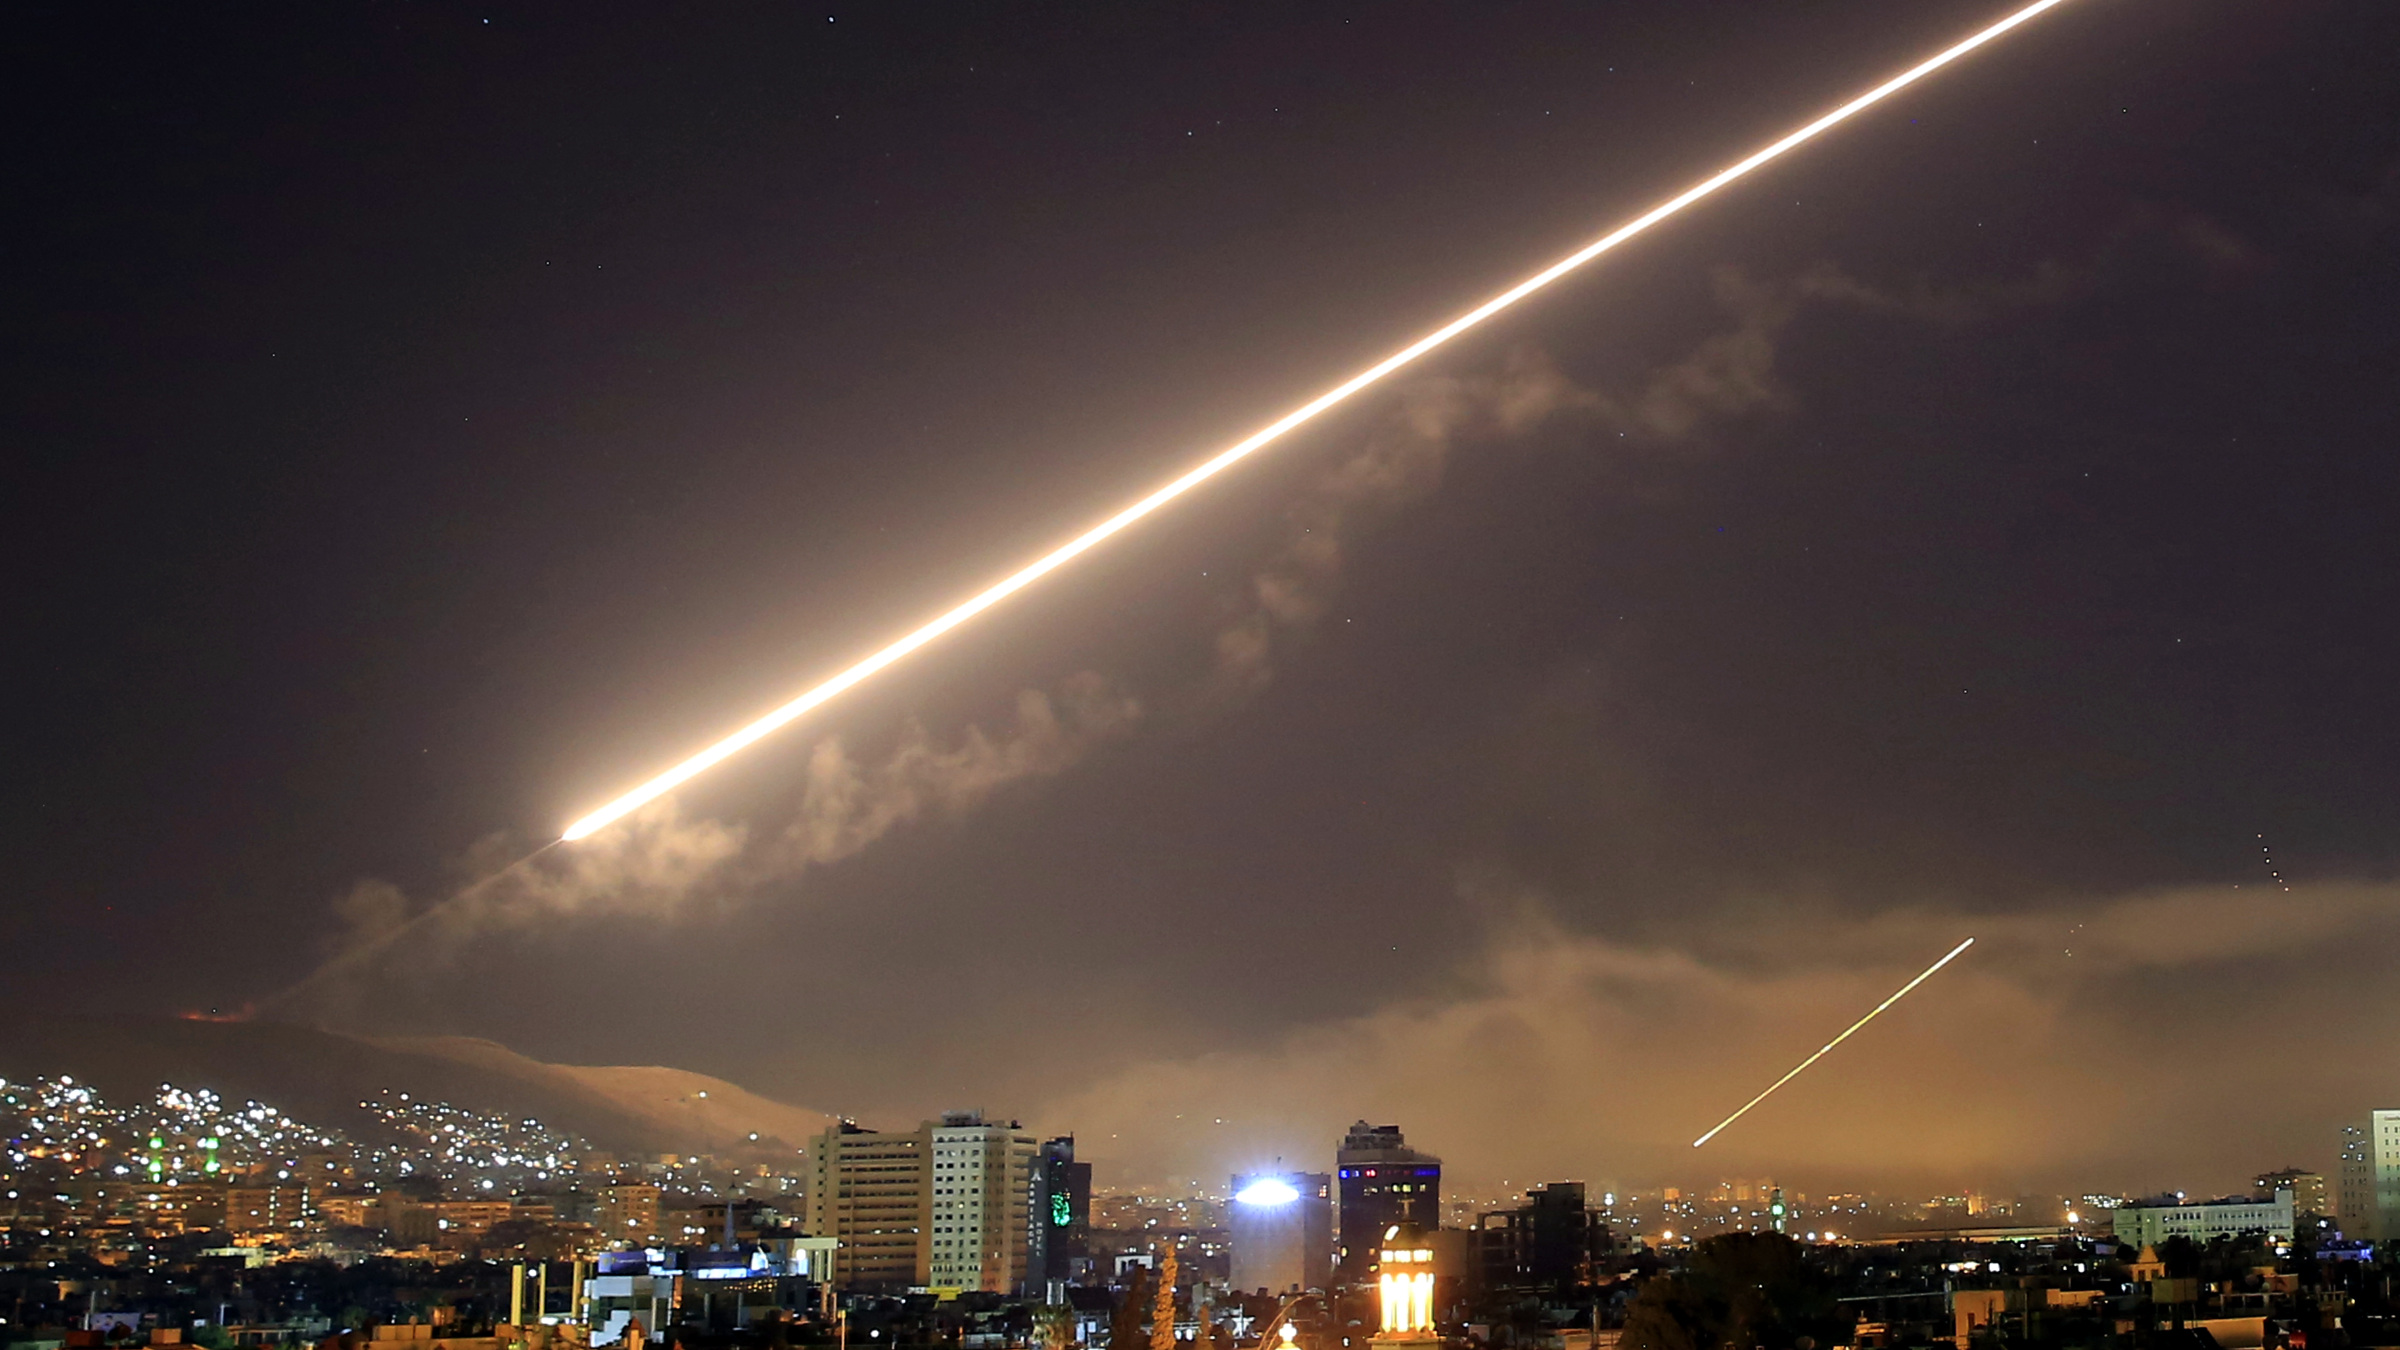 Damascus skies erupt with surface to air missile fire as the U.S. launches an attack on Syria targeting different parts of the Syrian capital Damascus, Syria, early Saturday, April 14, 2018. Syria's capital has been rocked by loud explosions that lit up the sky with heavy smoke as U.S. President Donald Trump announced airstrikes in retaliation for the country's alleged use of chemical weapons.